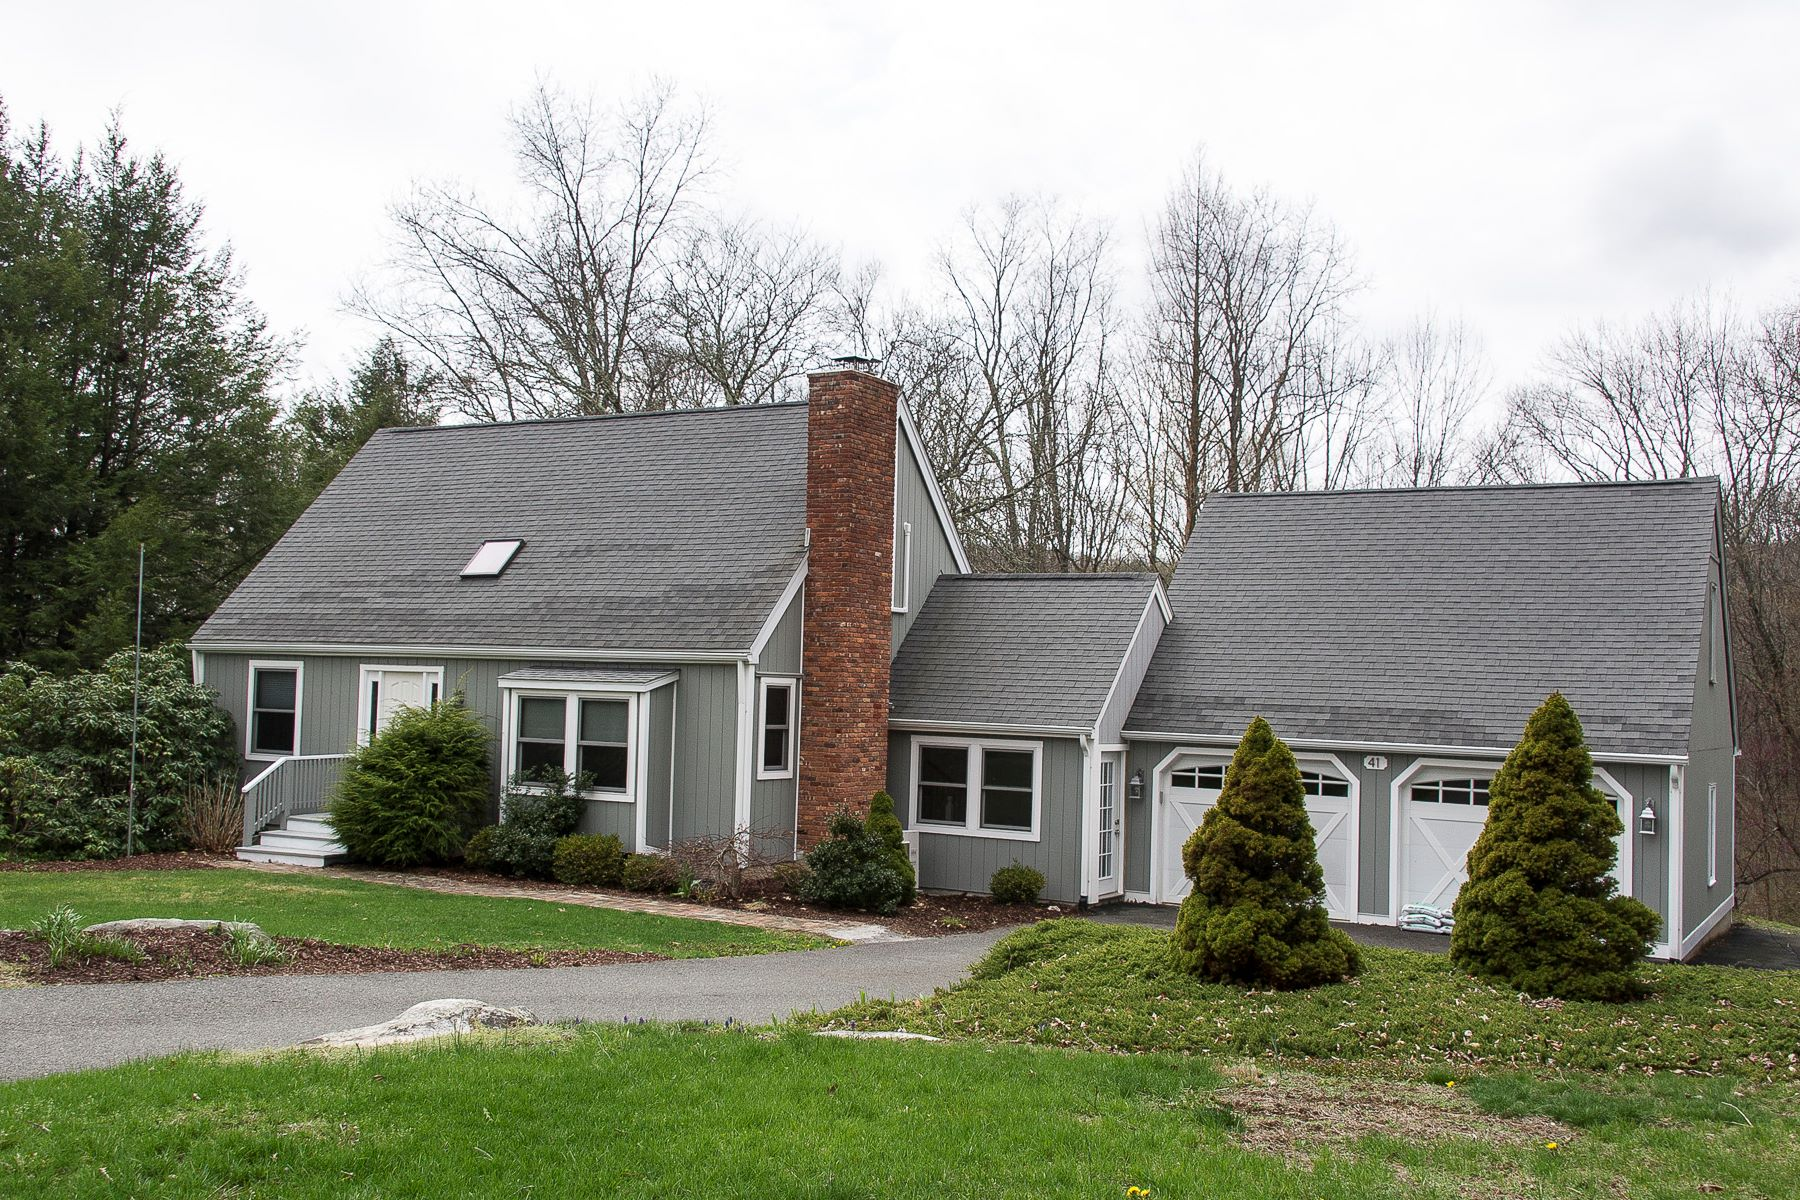 Maison unifamiliale pour l Vente à Private Merryall Contemporary 41 Meetinghouse Terrace New Milford, Connecticut 06776 États-Unis